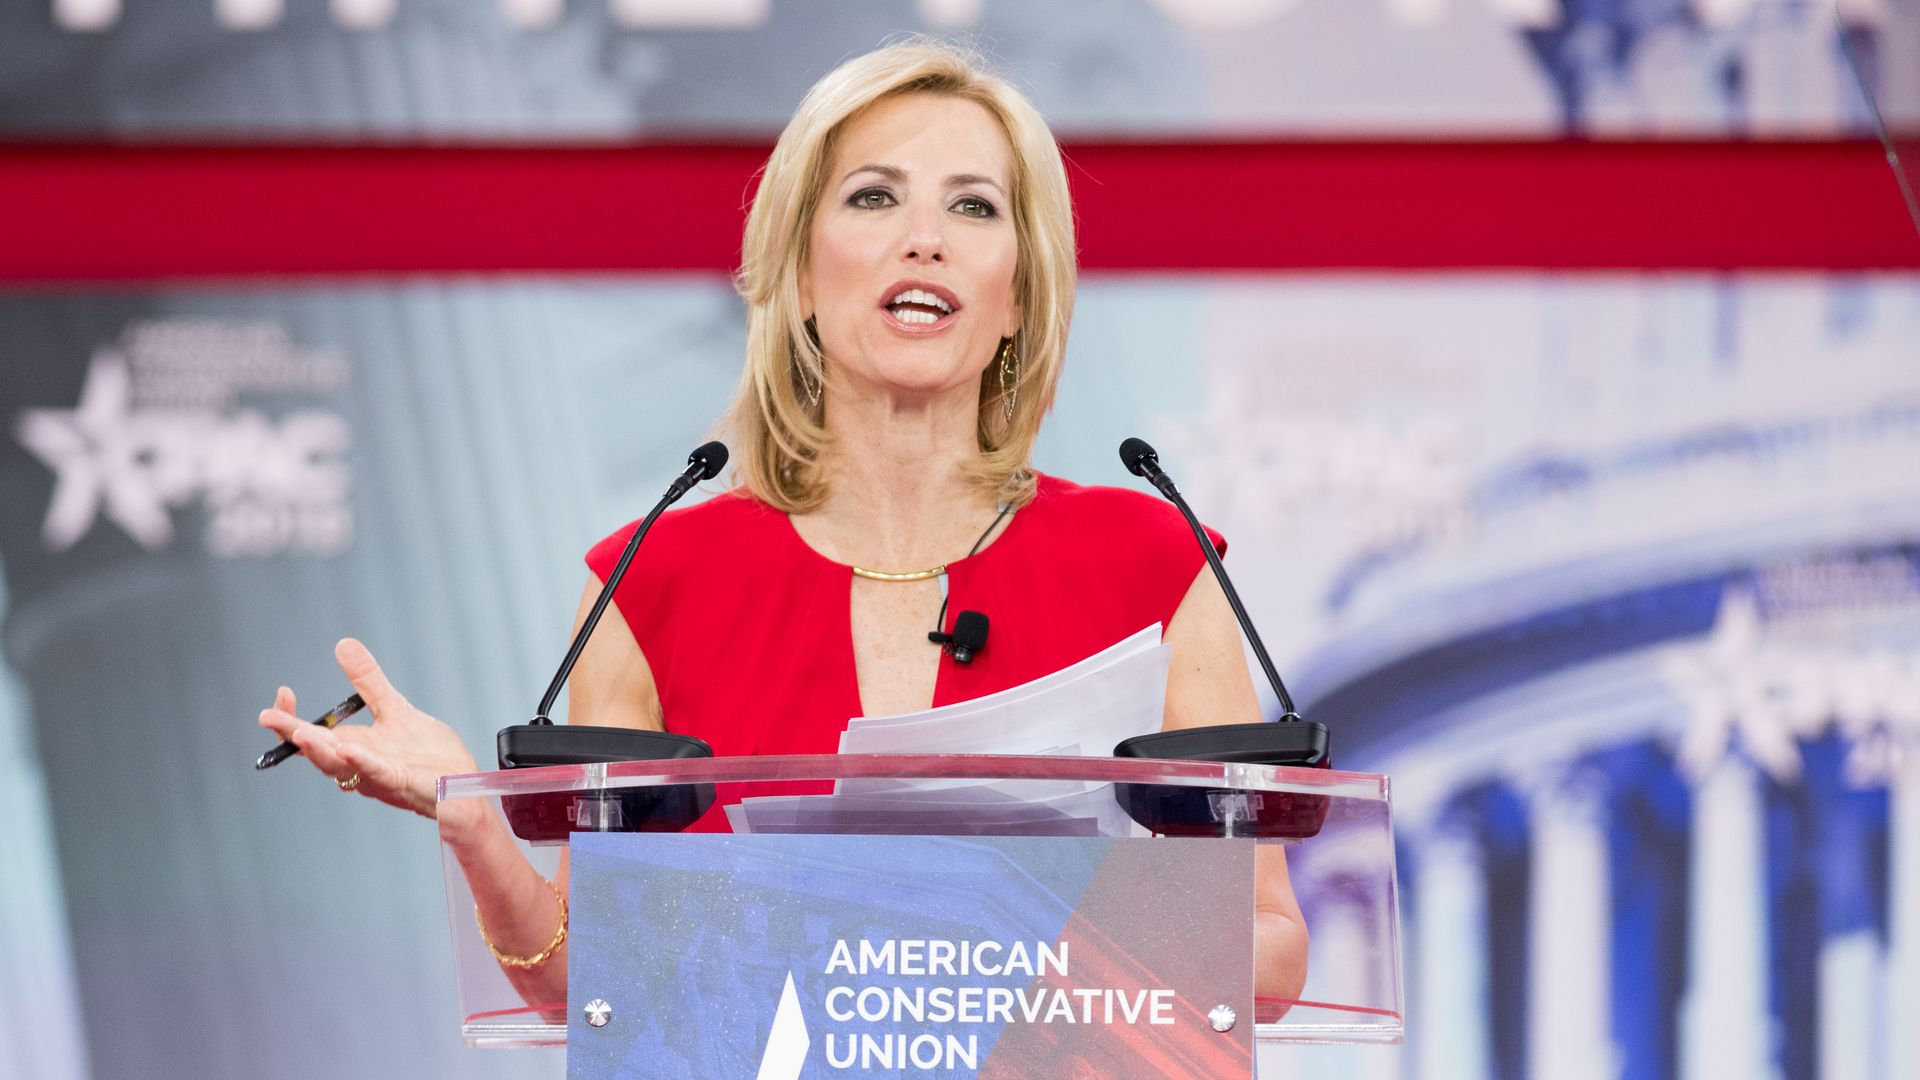 Laura Ingraham looks mad talking at a podium